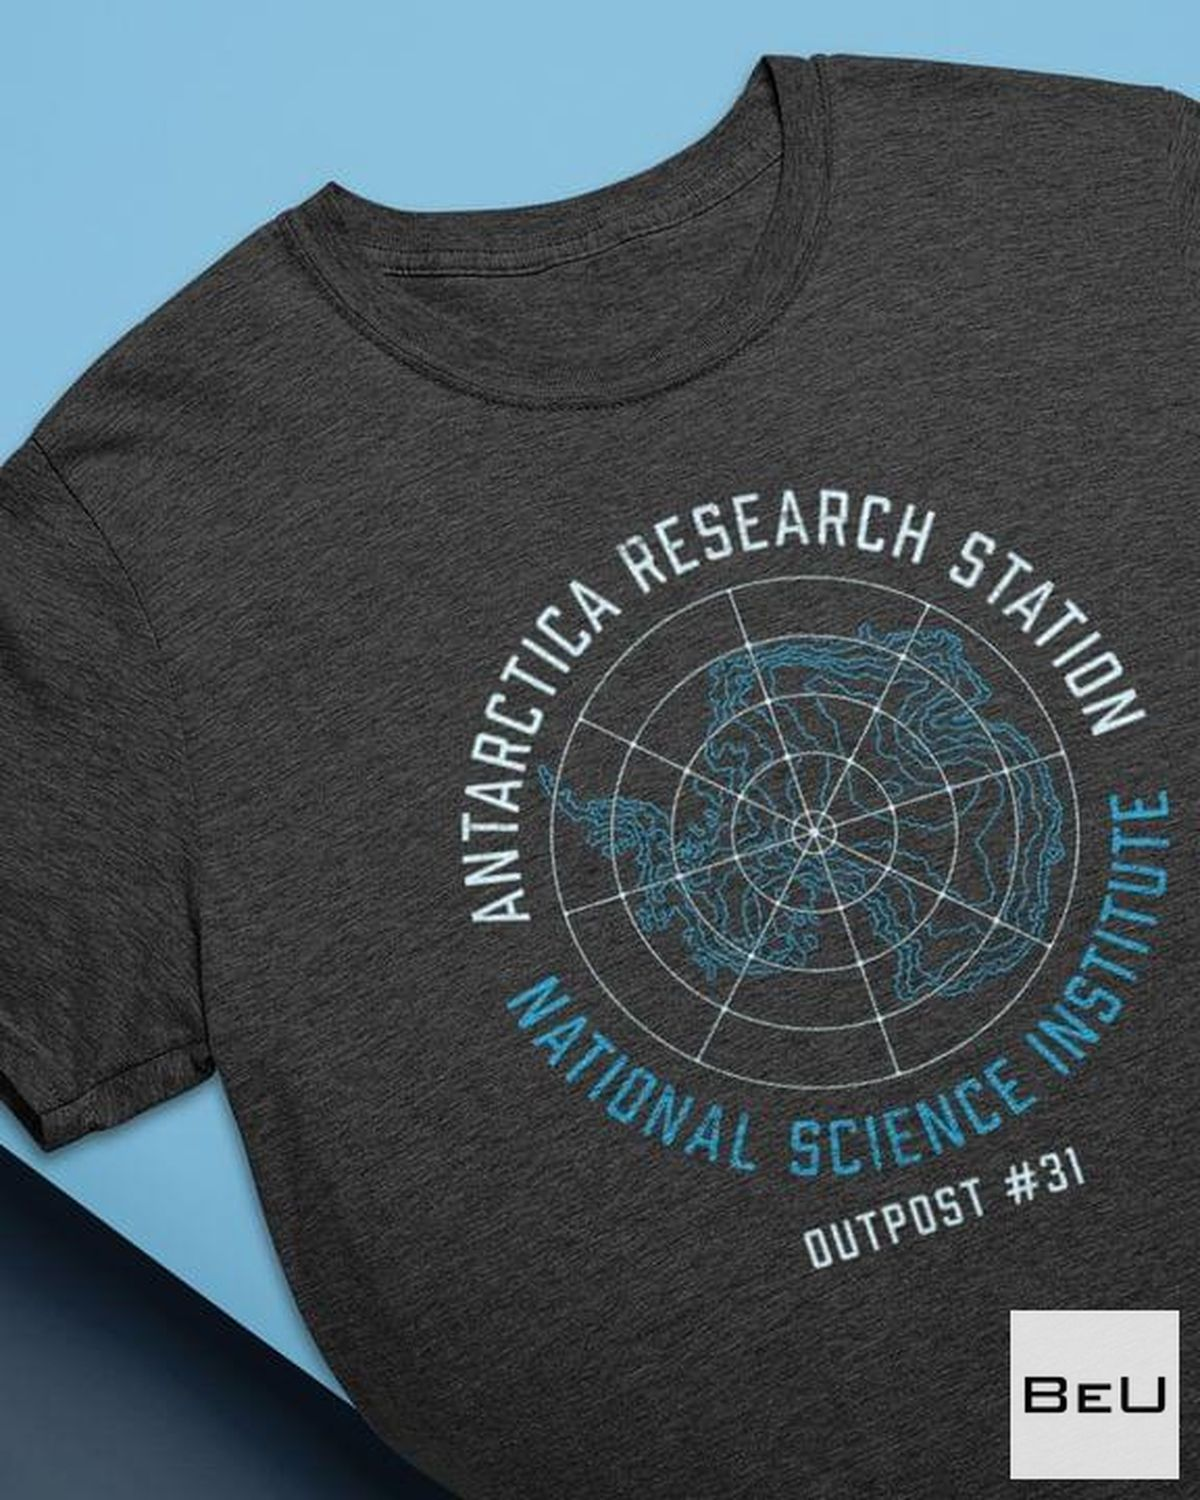 Antarctica Research Station National Science Institute Shirt